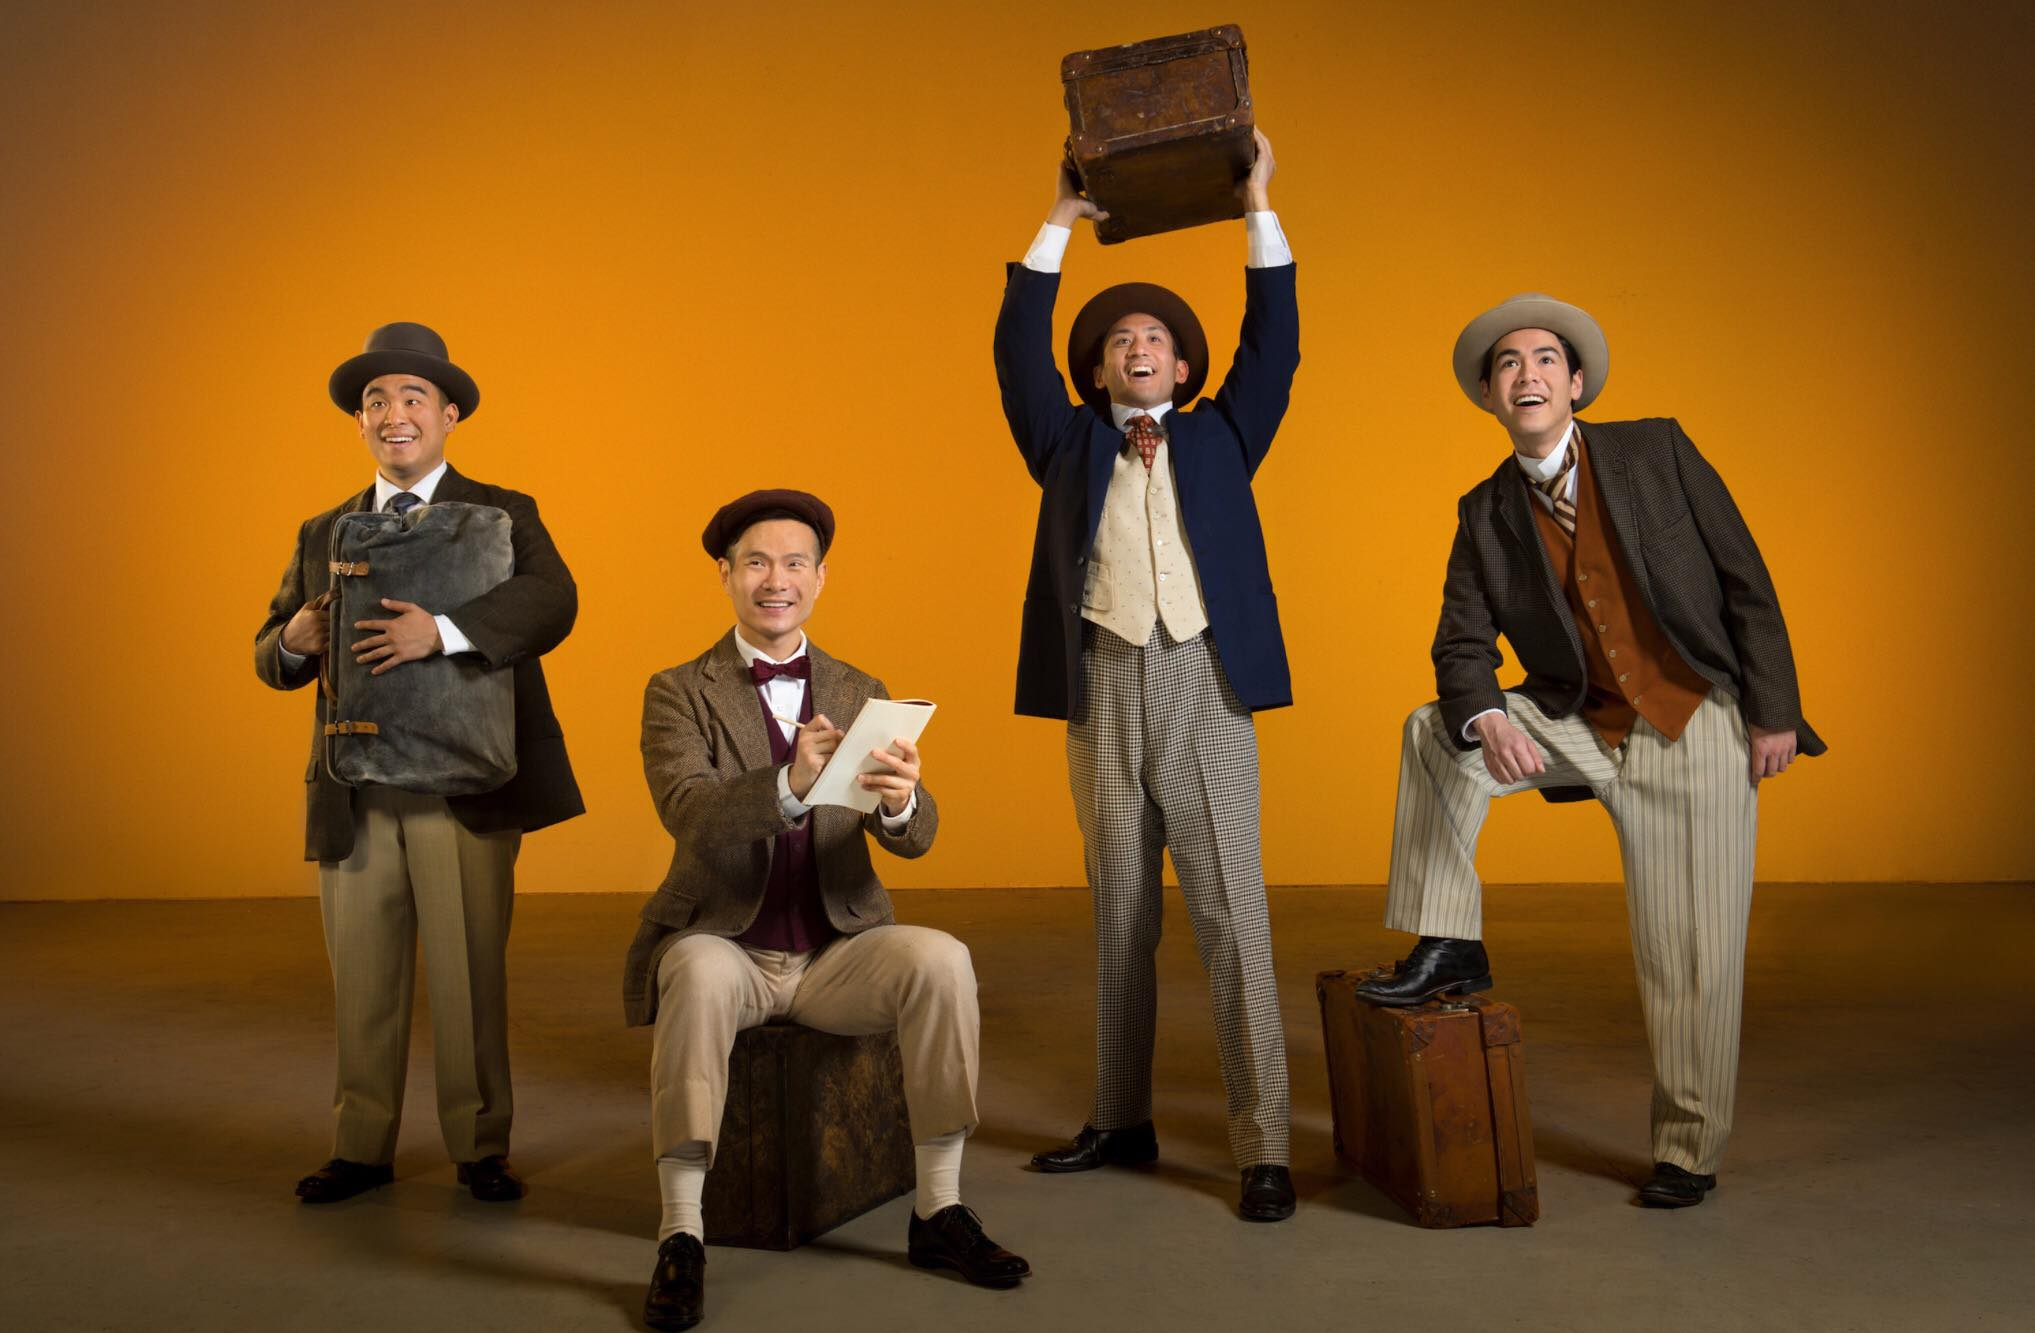 L-R: Frank (Phil Wong), Henry (James Seol), Charlie (Hansel Tan), and Fred (Sean Fenton). Photo Credit:  Kevin Berne